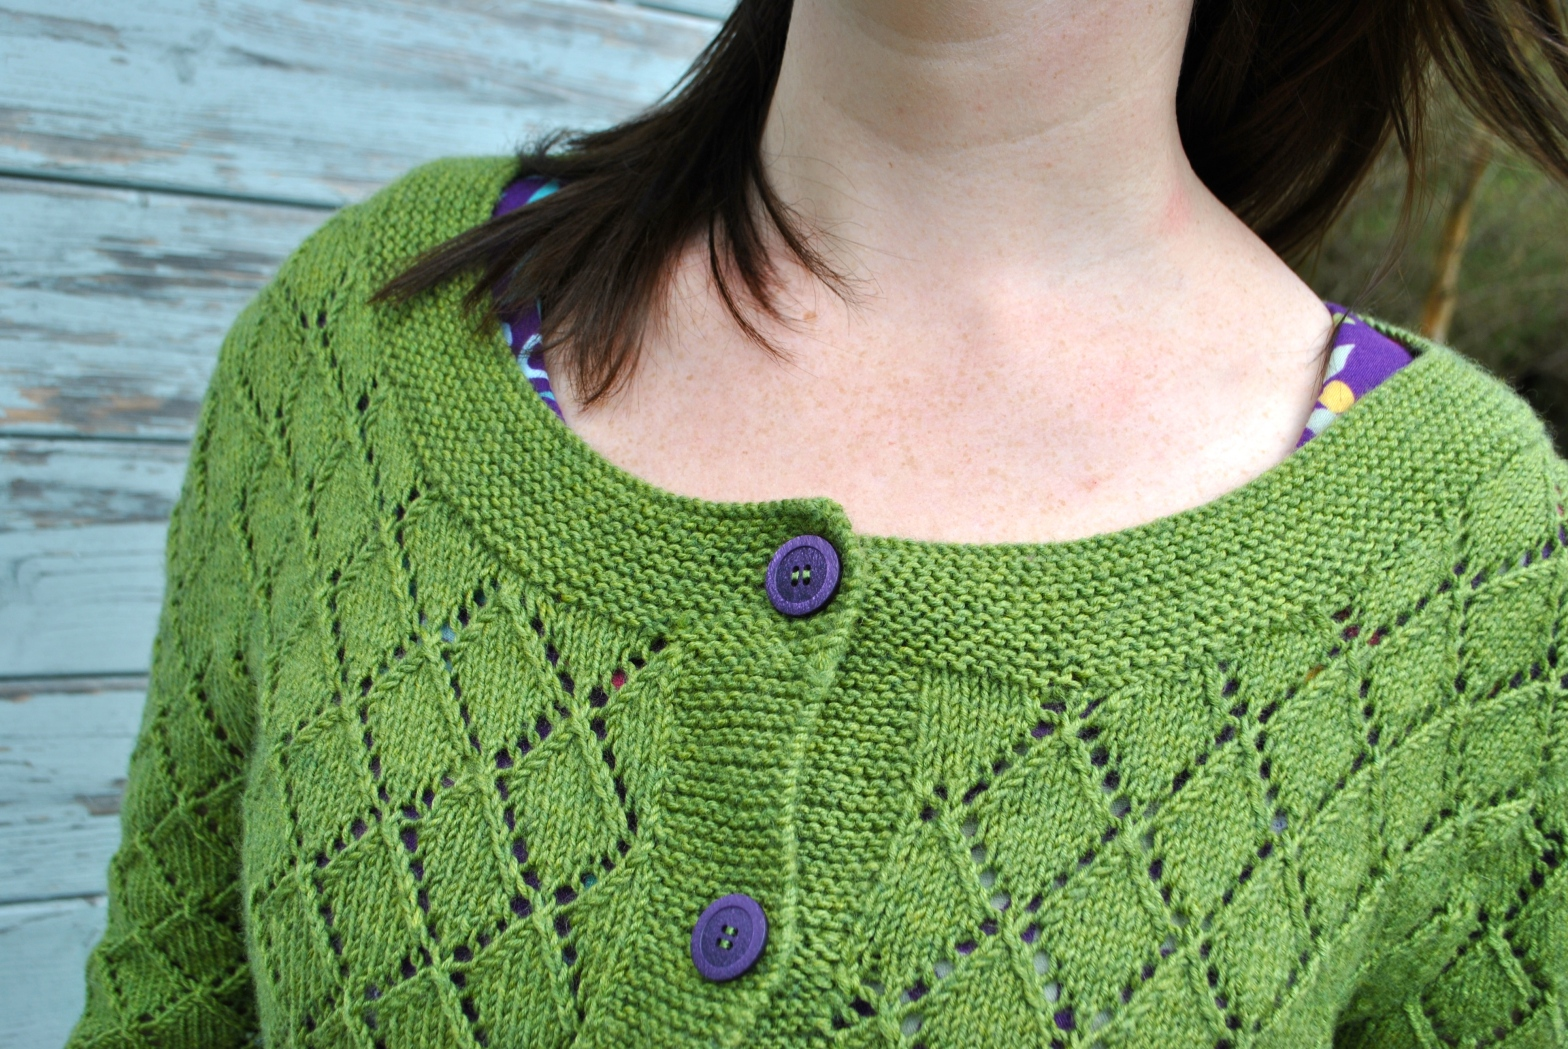 Grassy Cardi by knitahedron